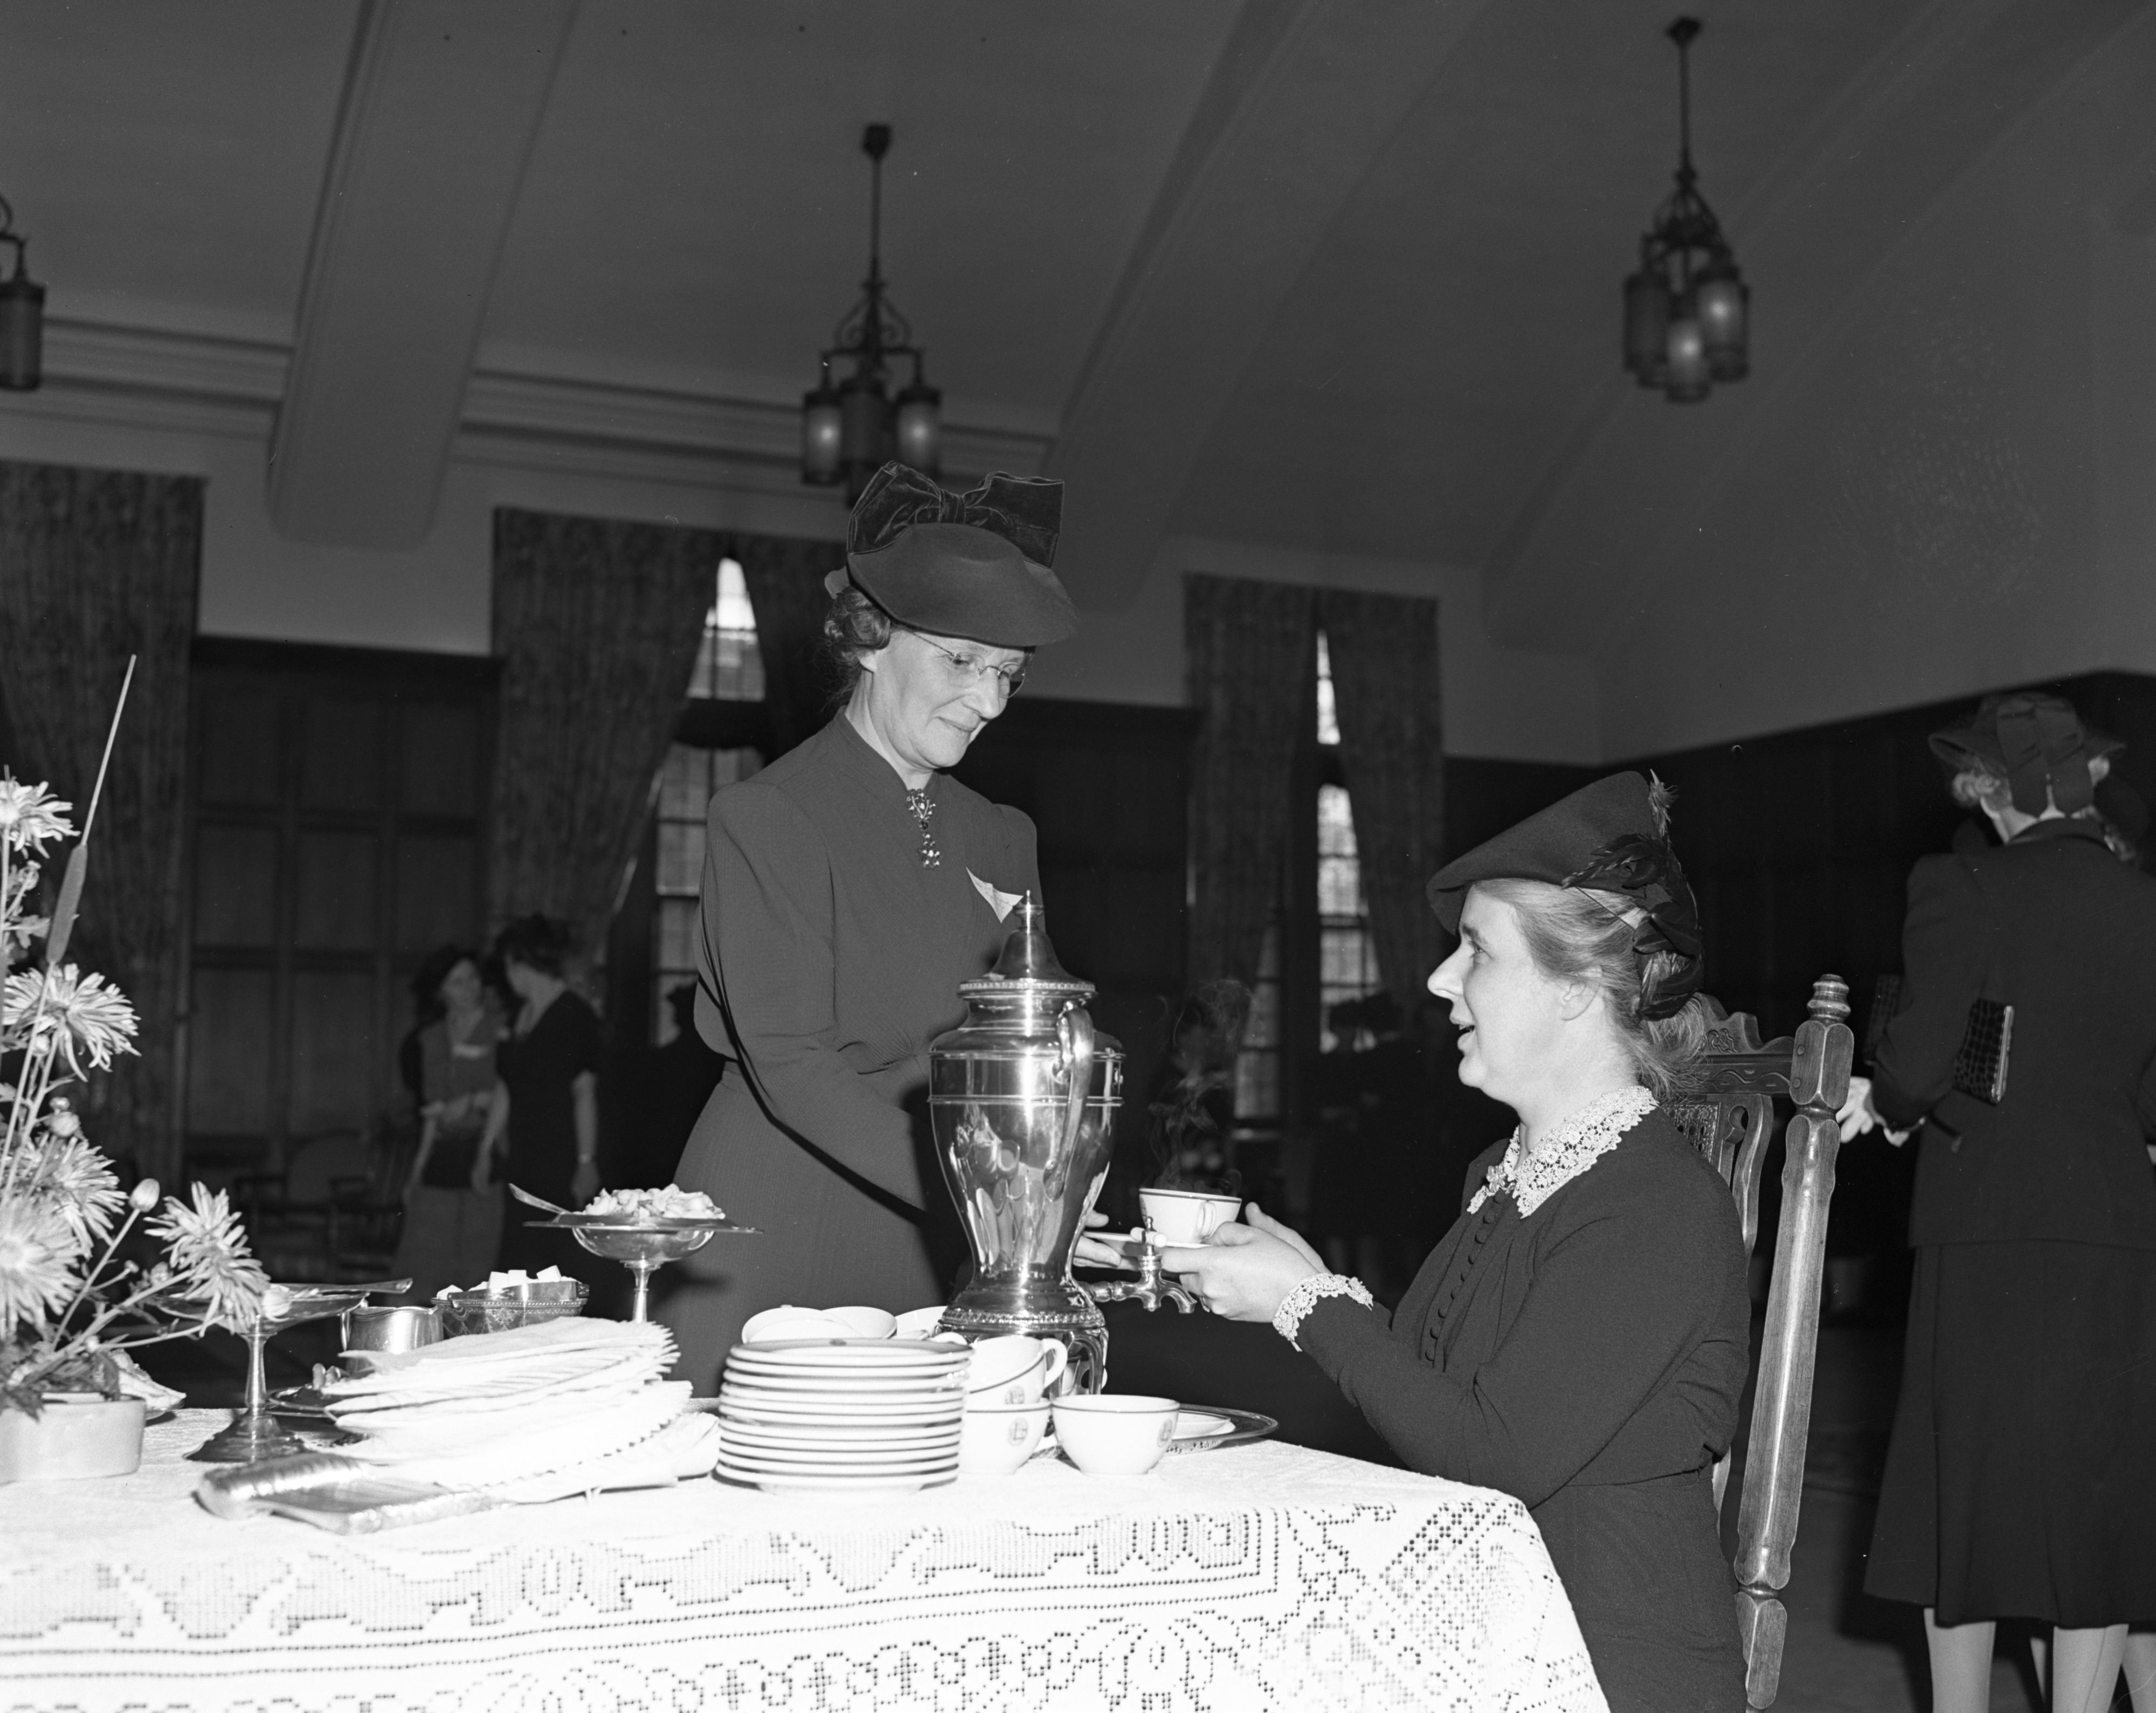 Sybel K. Bennett serving Mrs. Crawford at Faculty Women's Club, October 1940 image